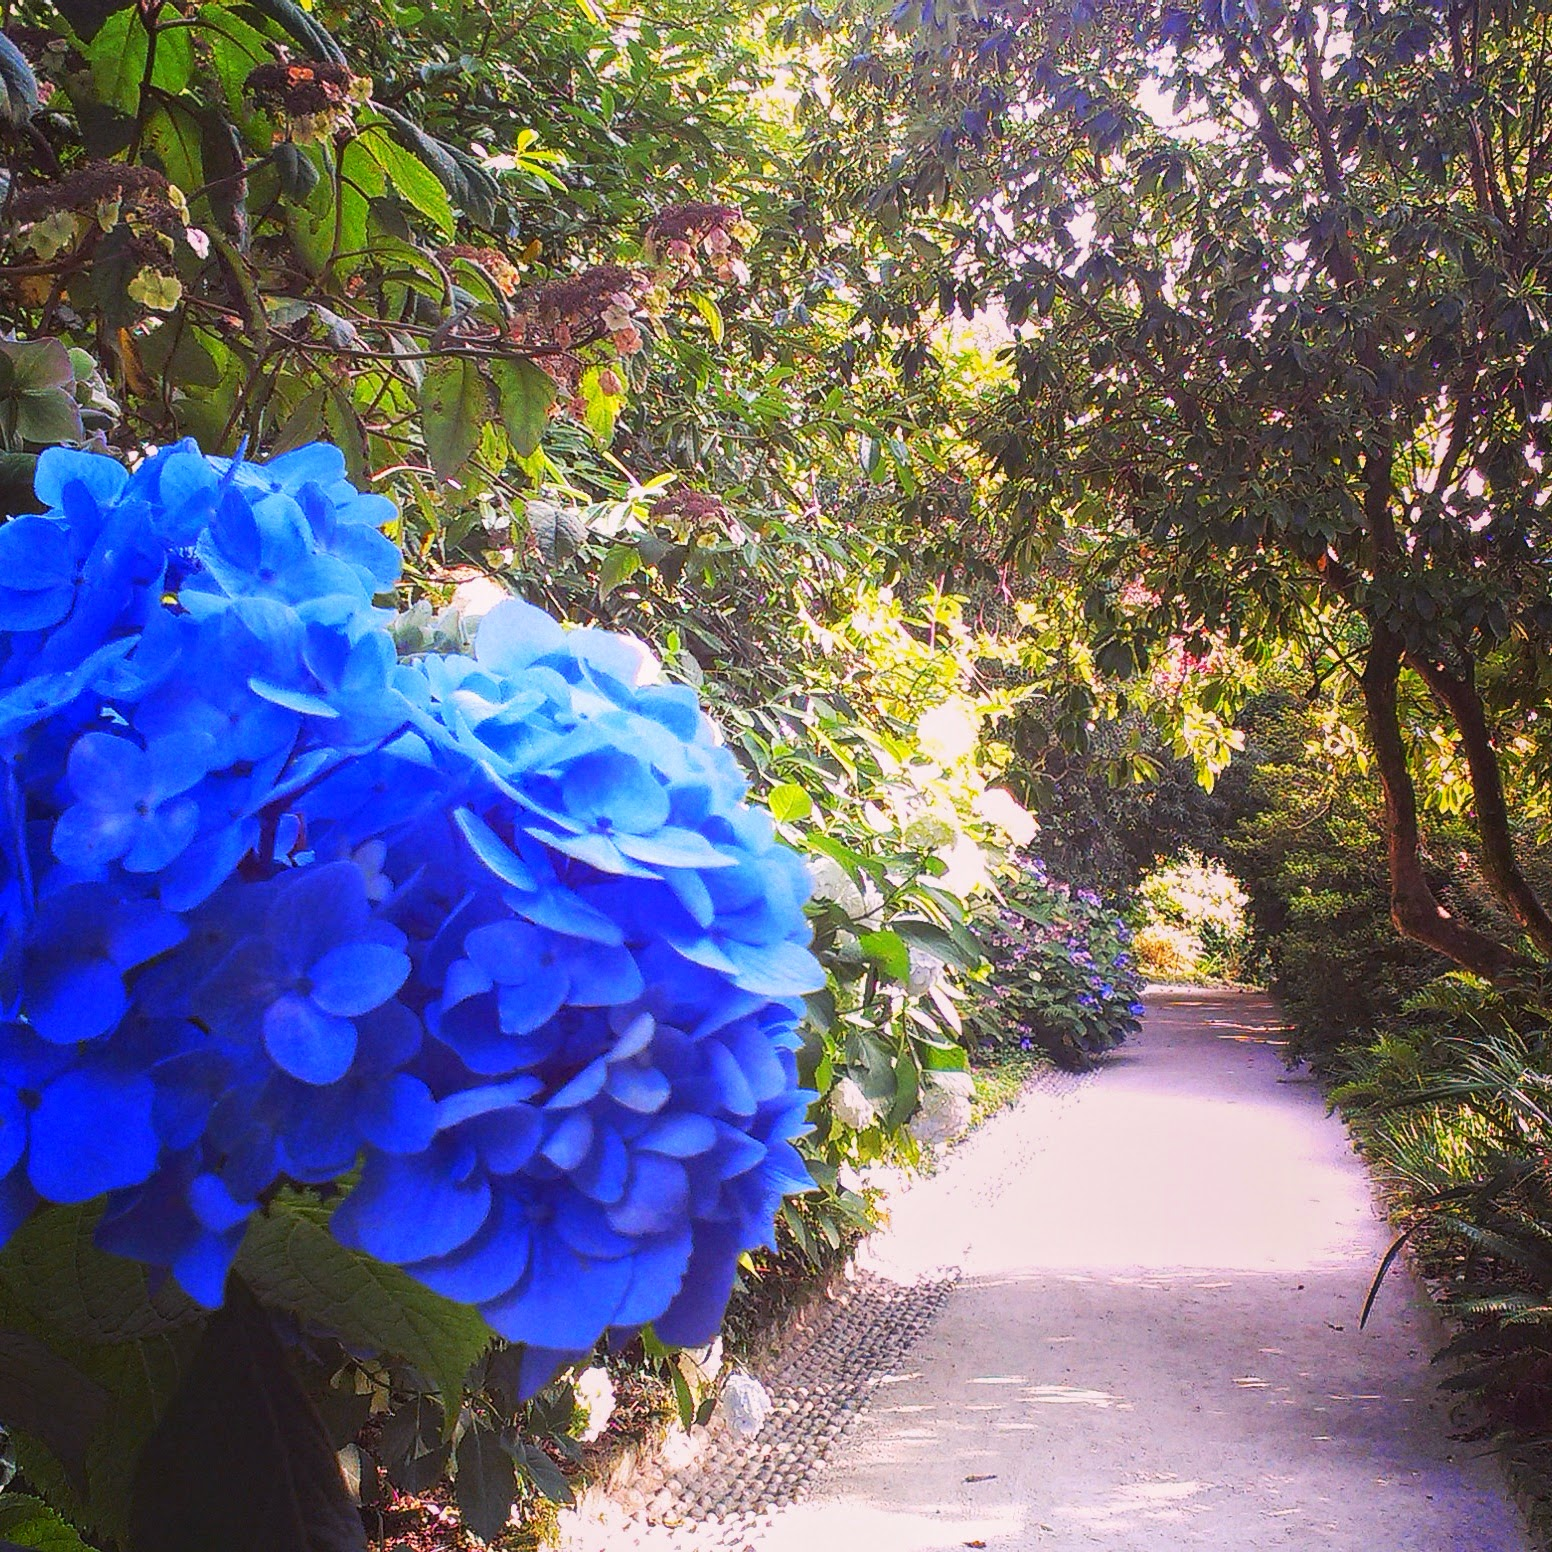 Blue Hydrangeas at The Lost Gardens of Heligan